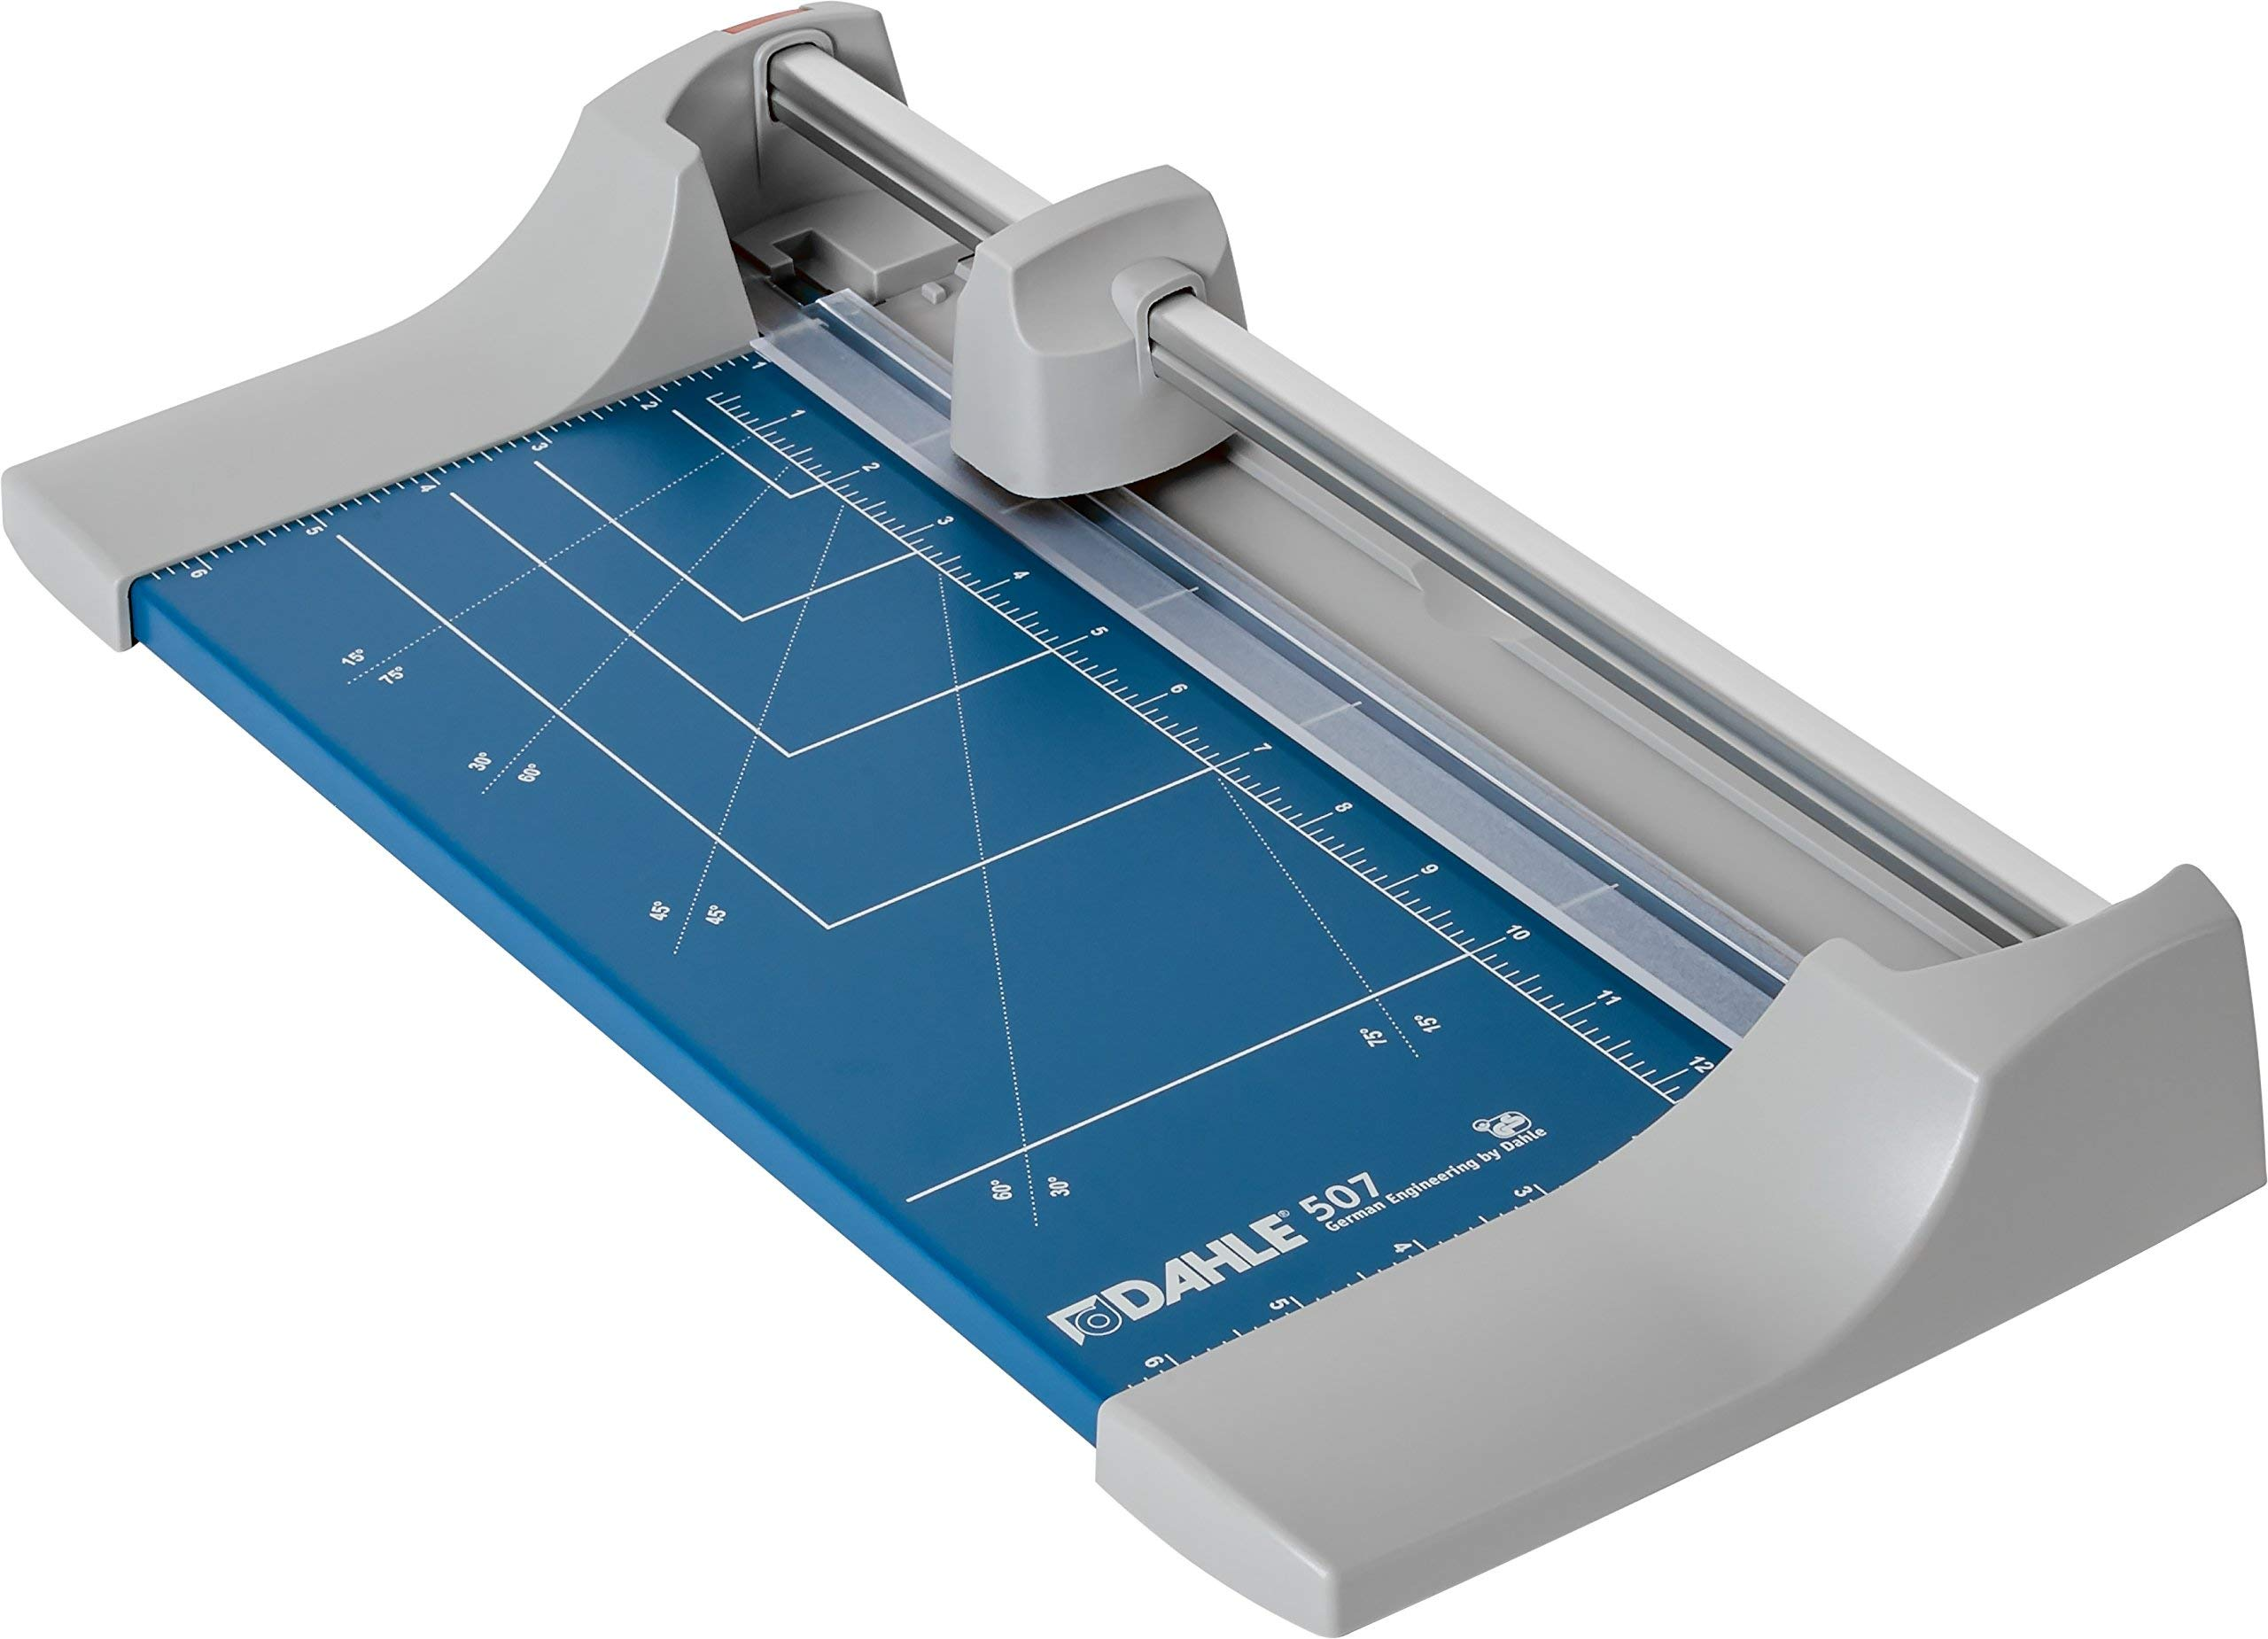 Dahle 507 Personal Rolling Trimmer, 12.5'' Cut Length, 7 Sheet Capacity, Self-Sharpening, Automatic Clamp, German Engineered Paper Cutter (Renewed)